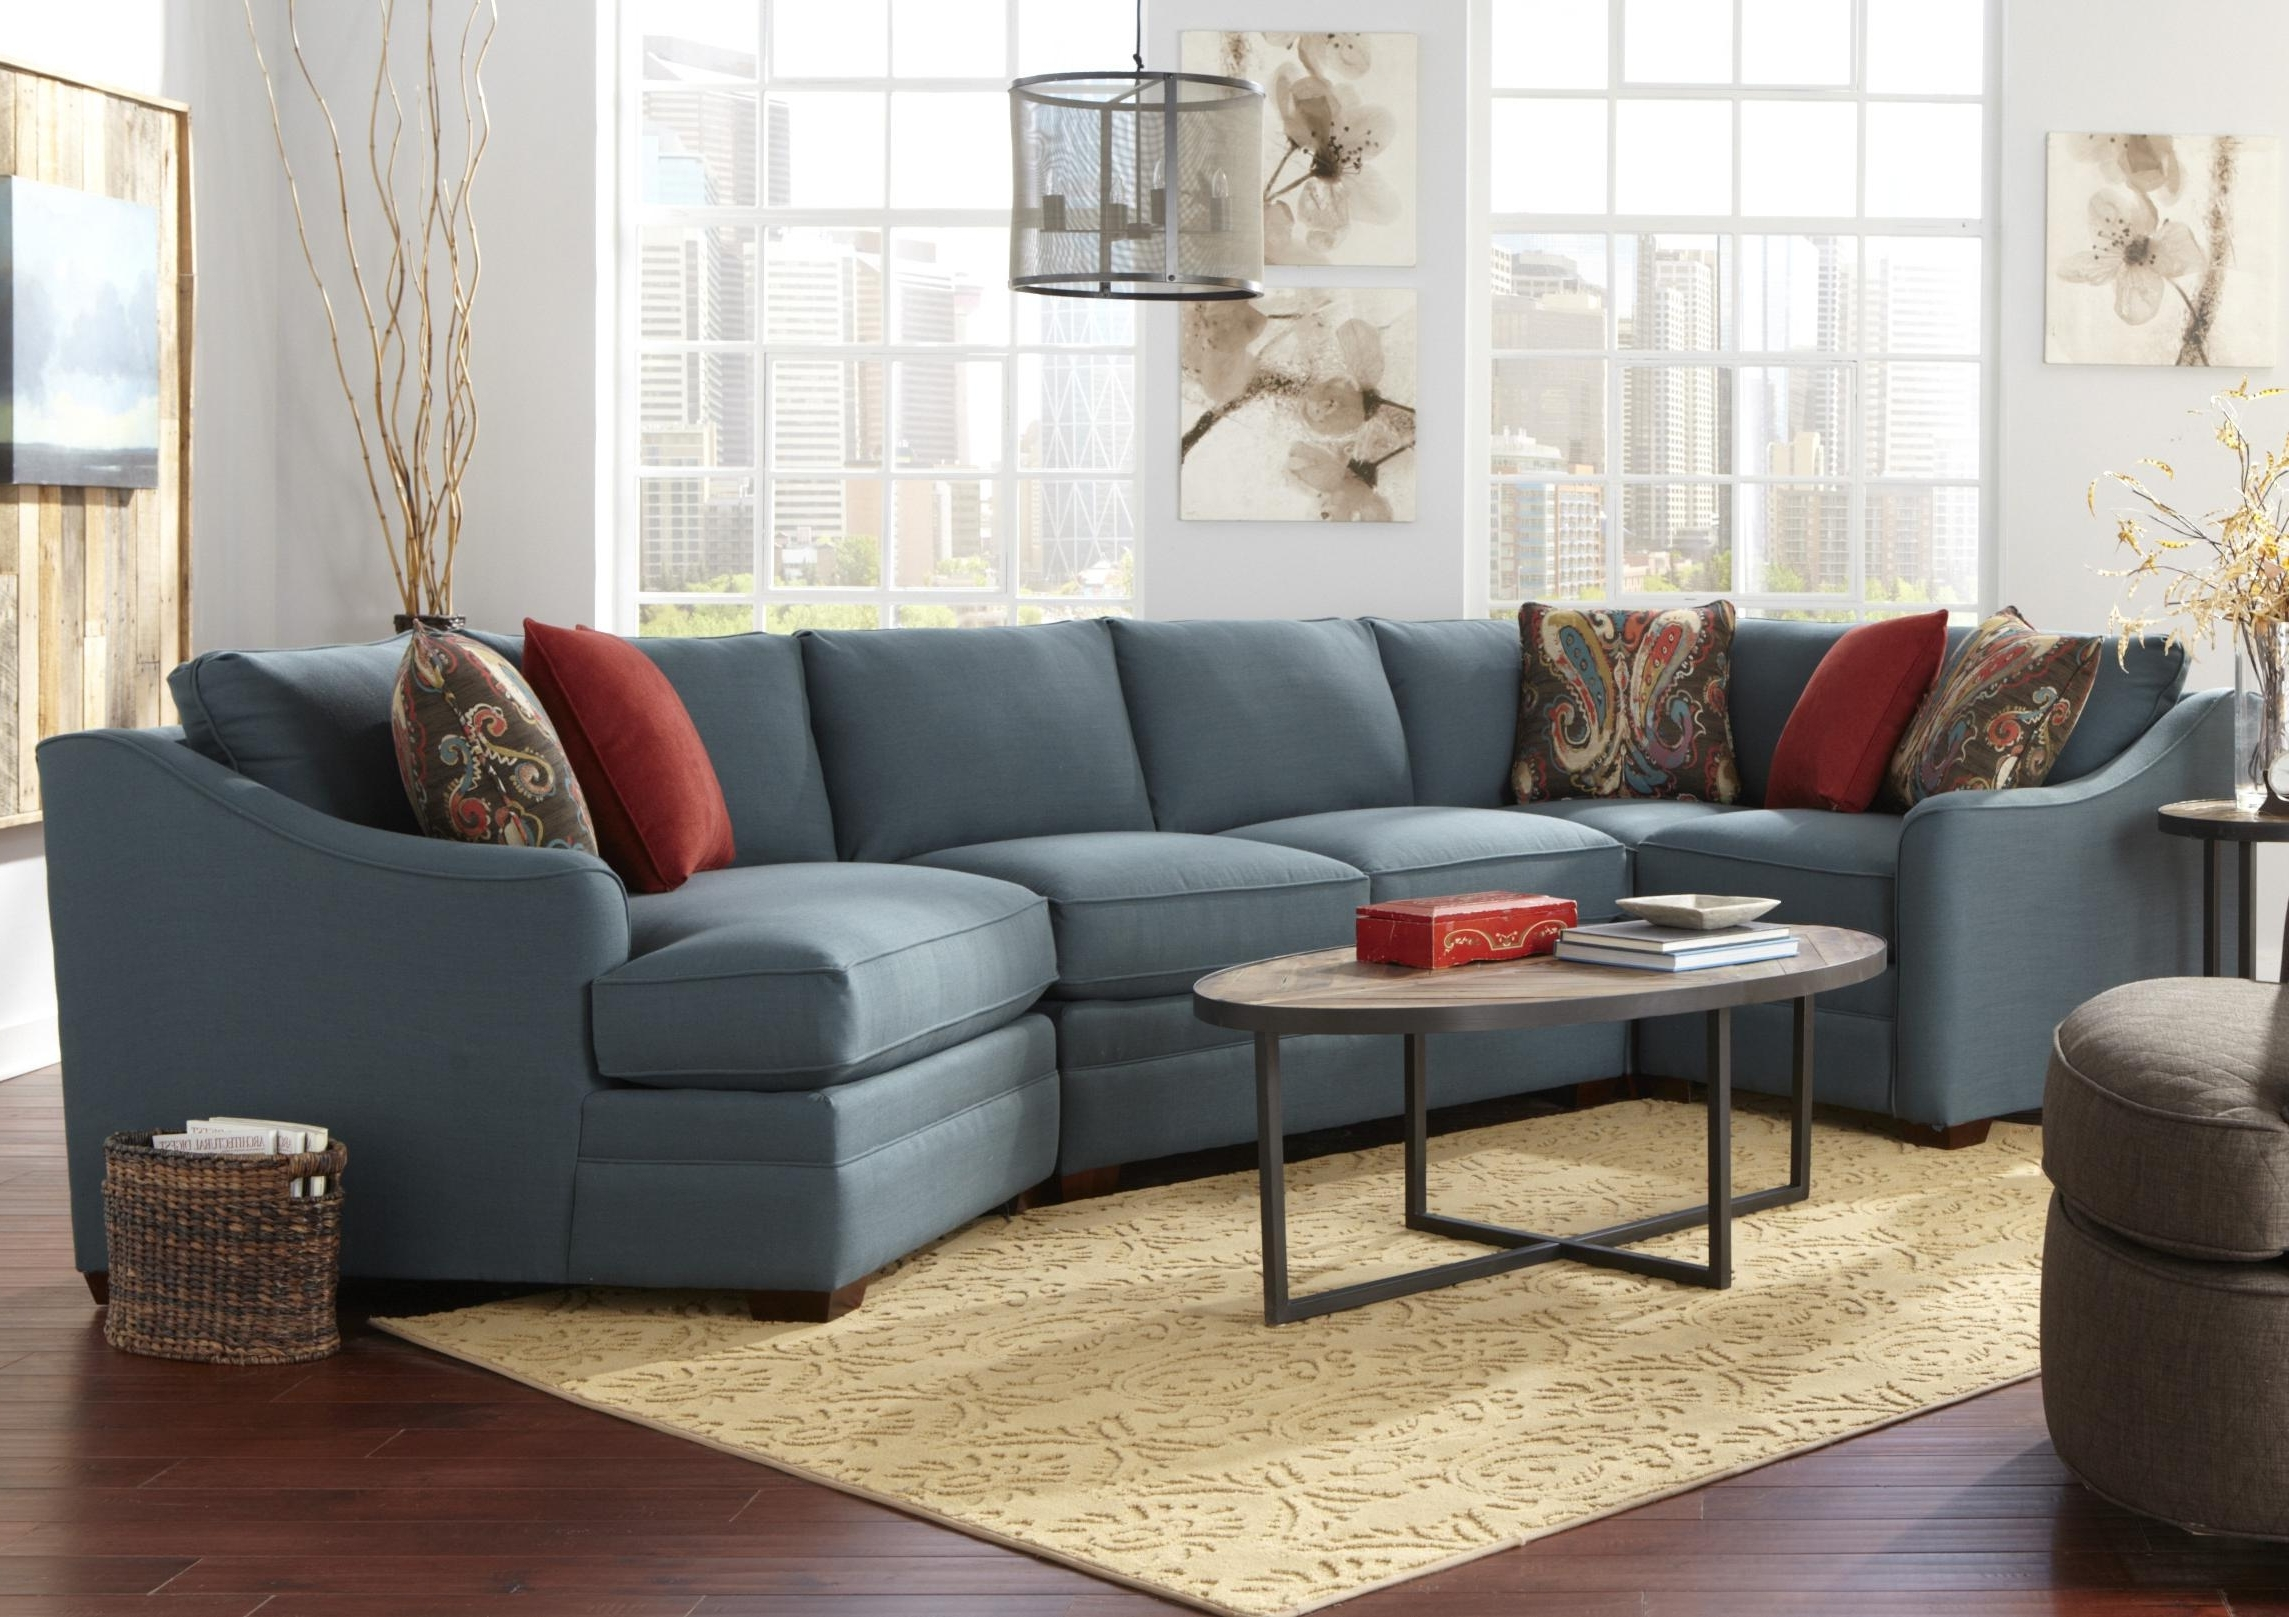 Fashionable Four Piece <B>Customizable</b> Sectional Sofa With Raf Cuddler Within Cuddler Chaises (View 14 of 15)